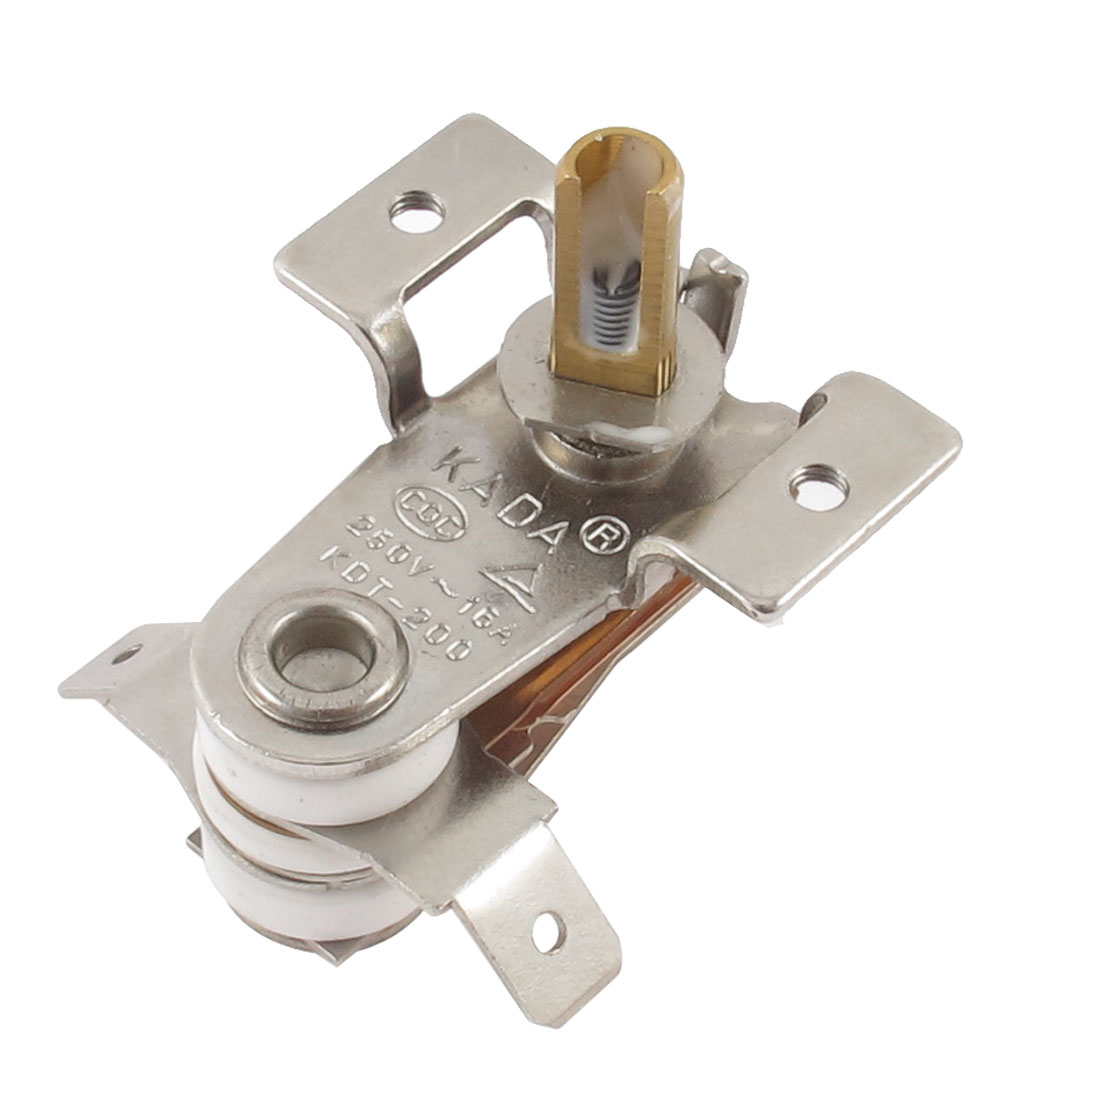 UXCELL Hot Sale AC <font><b>250V</b></font> <font><b>16A</b></font> 100 Celsius Adjustable Temperature <font><b>Thermostat</b></font> 5x13mm Shaft For Electric Oven KDT-200 image